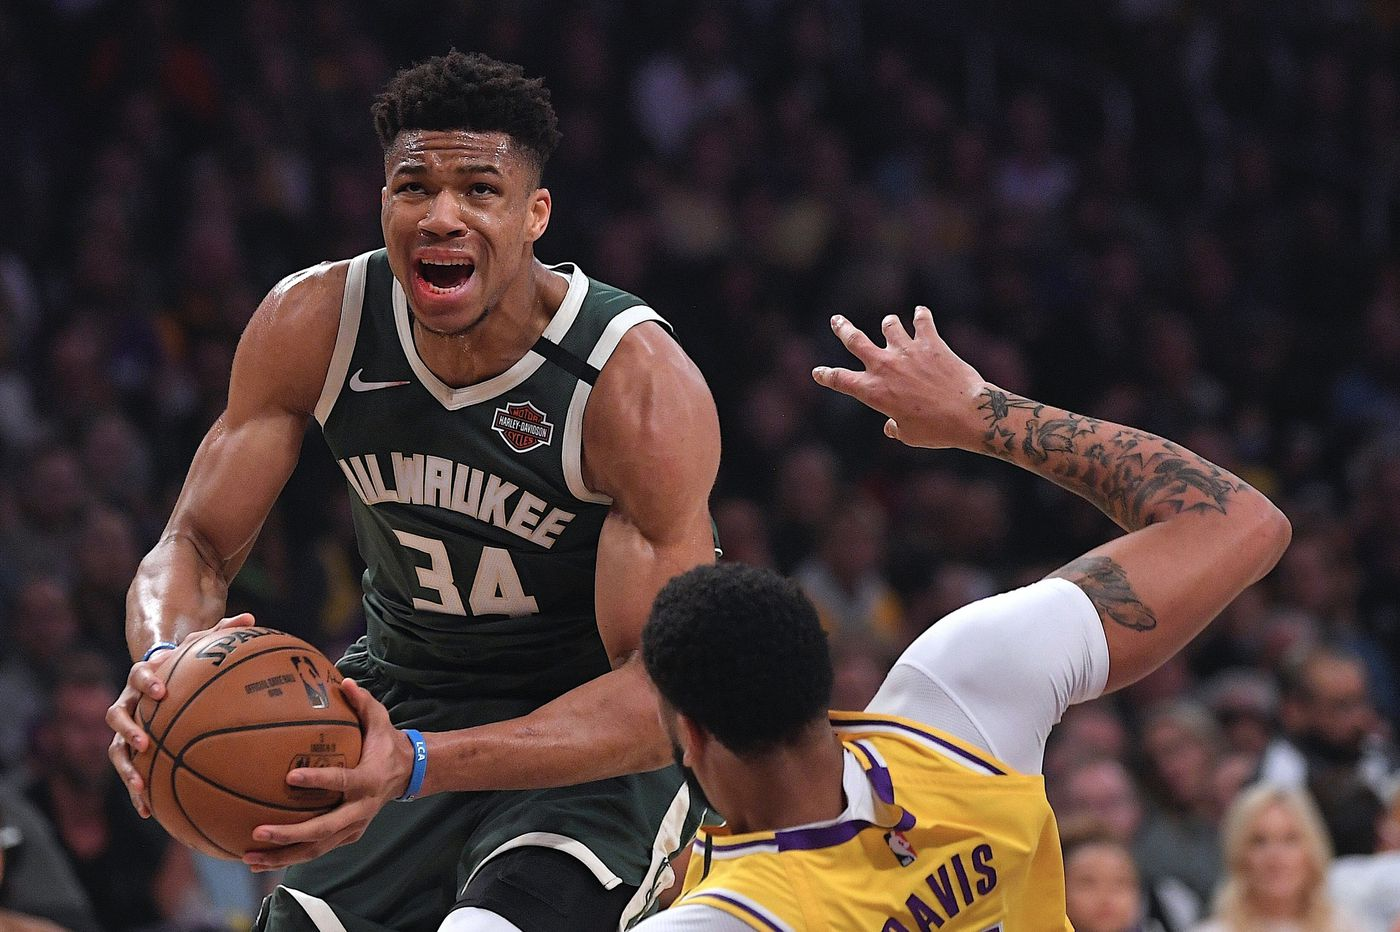 Latest sports chatter: Giannis Antetokounmpo already better than Allen Iverson? Way too soon.